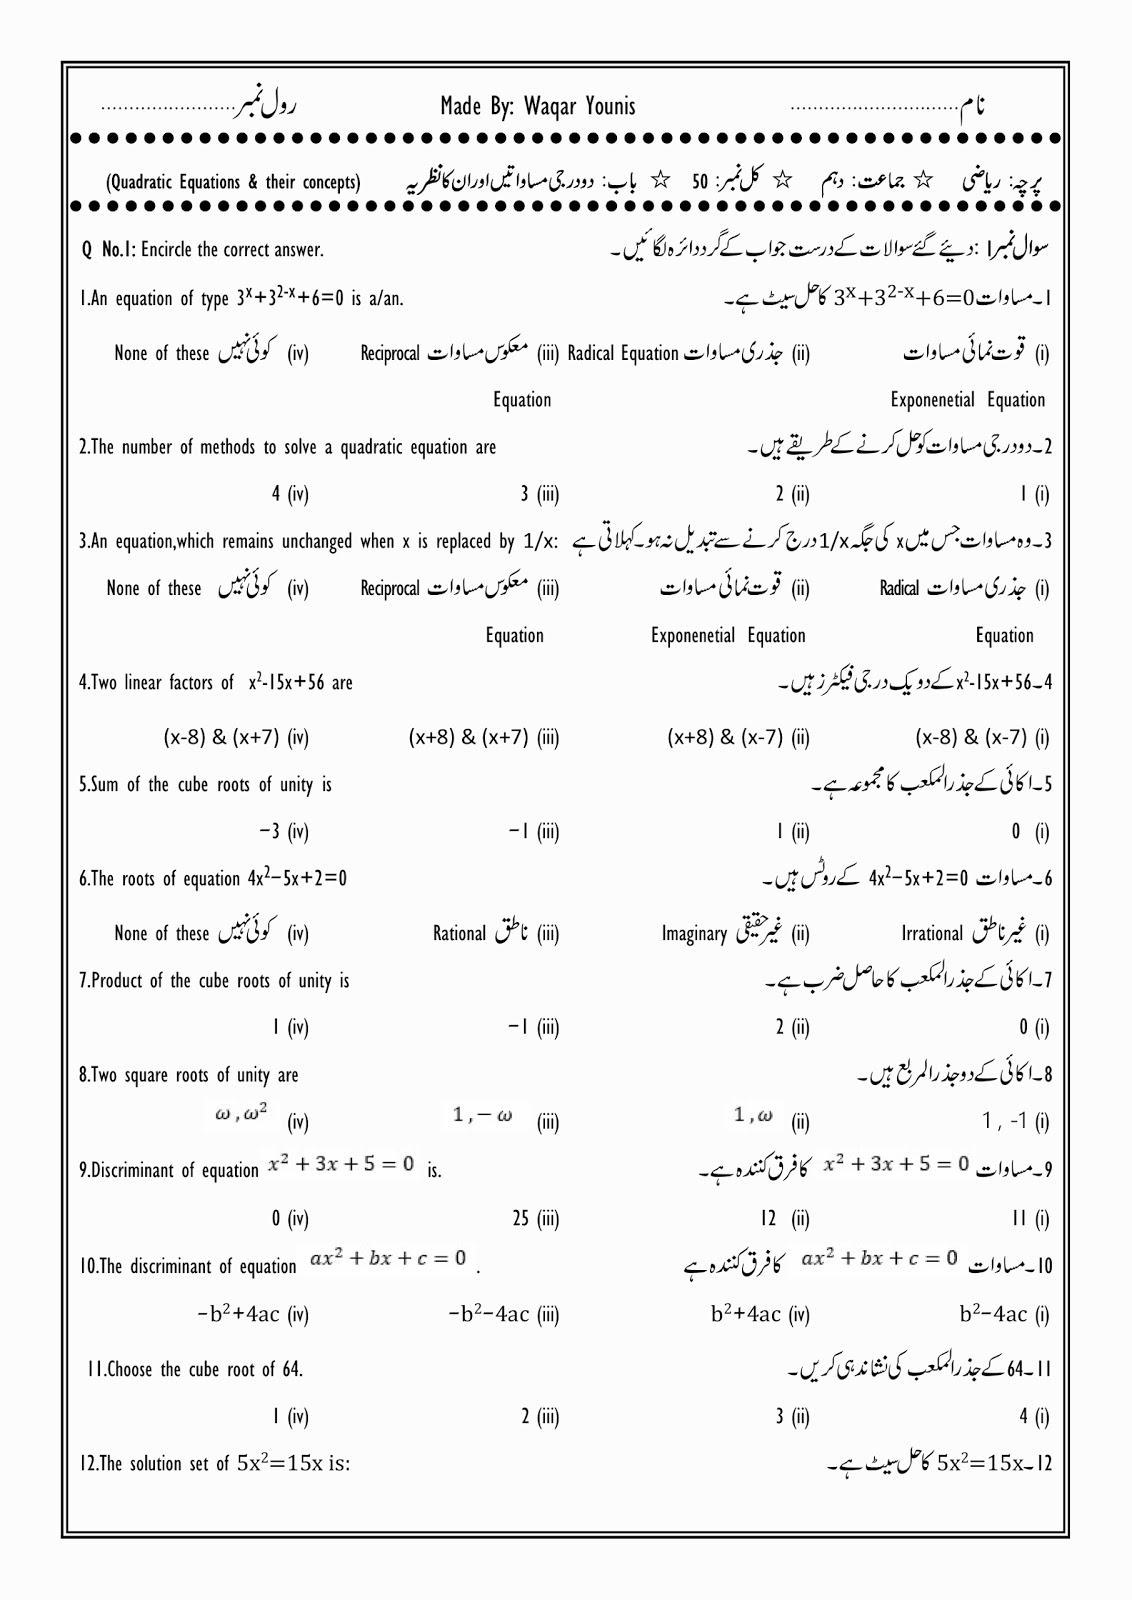 10th math 1st 2 chapters test quadratic equations and their concept 10th math 1st 2 chapters test quadratic equations and their concept pdf format book math 10th chapters 1st 2nd medium english urdu ccuart Choice Image